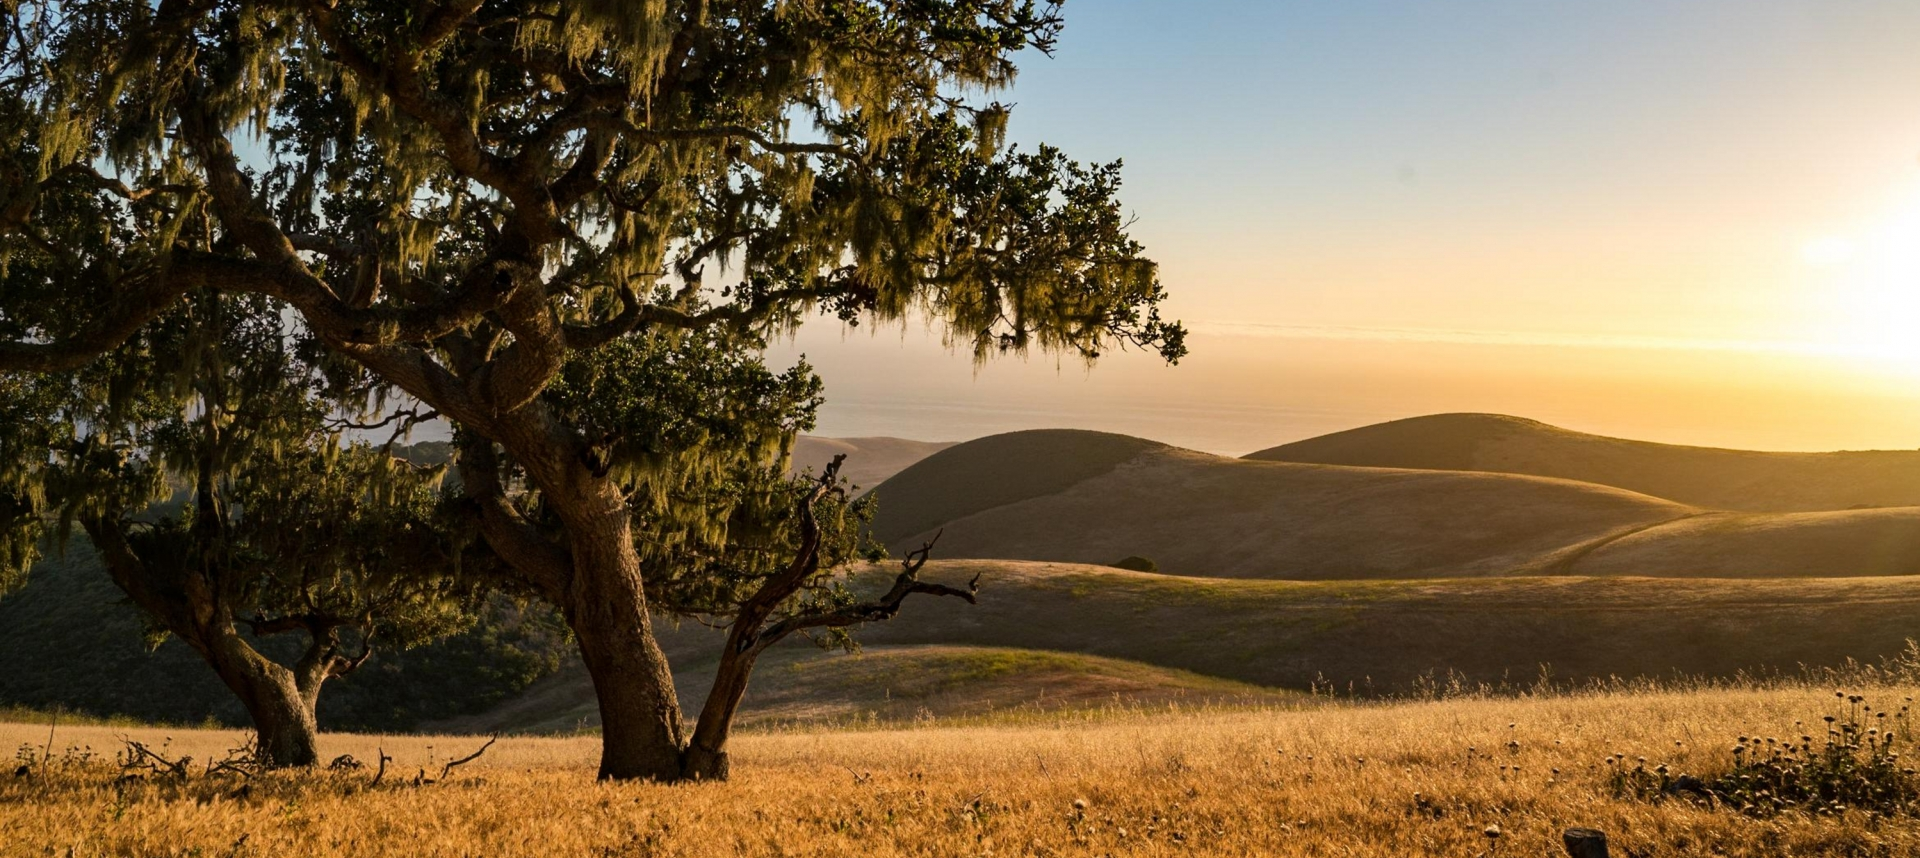 Large oak tree landscape with rolling hills and clear sky